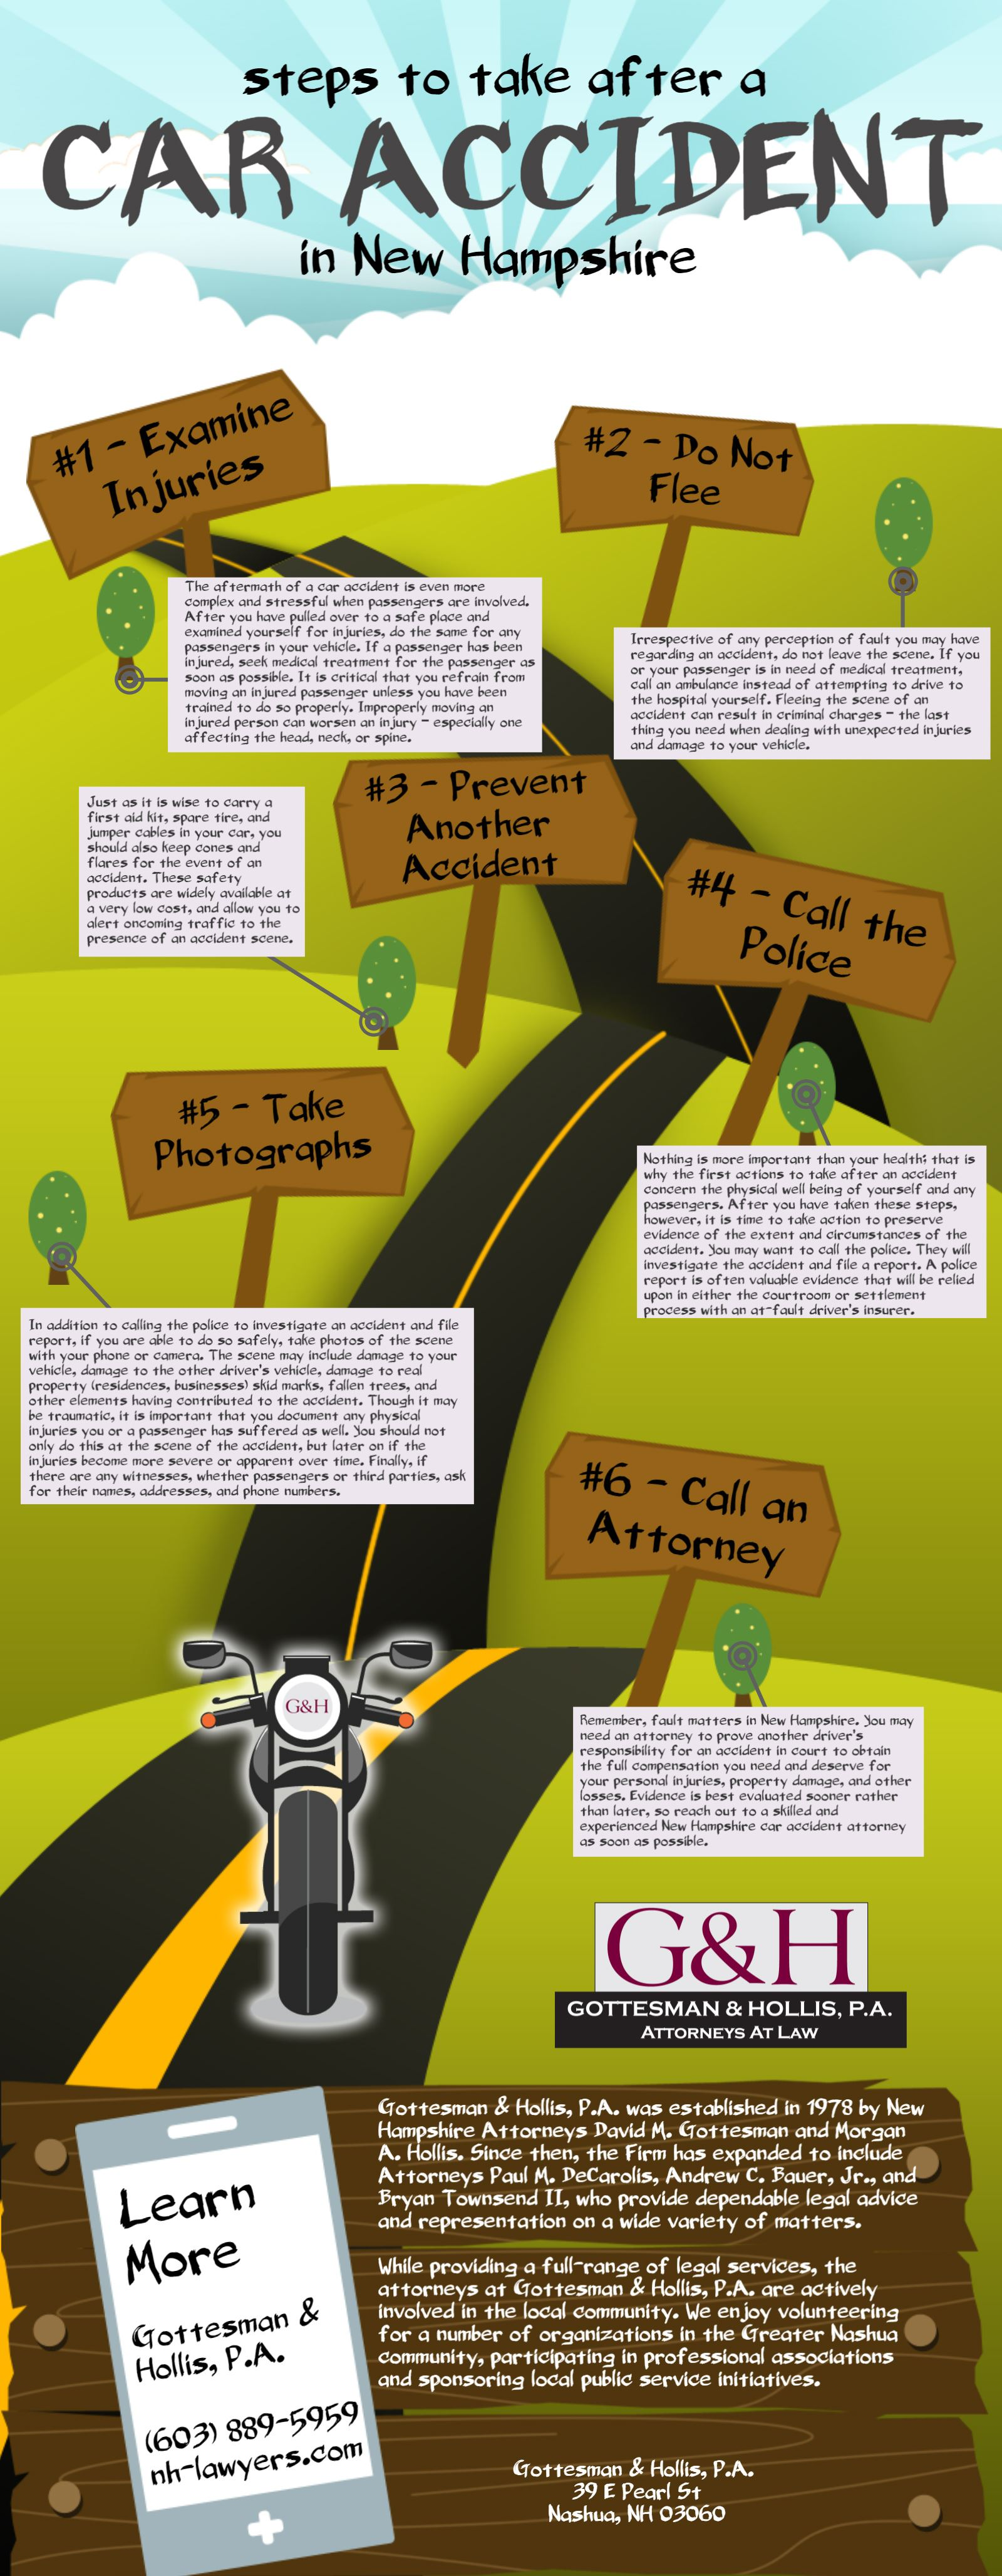 Steps to take after a car accident in new hampshire